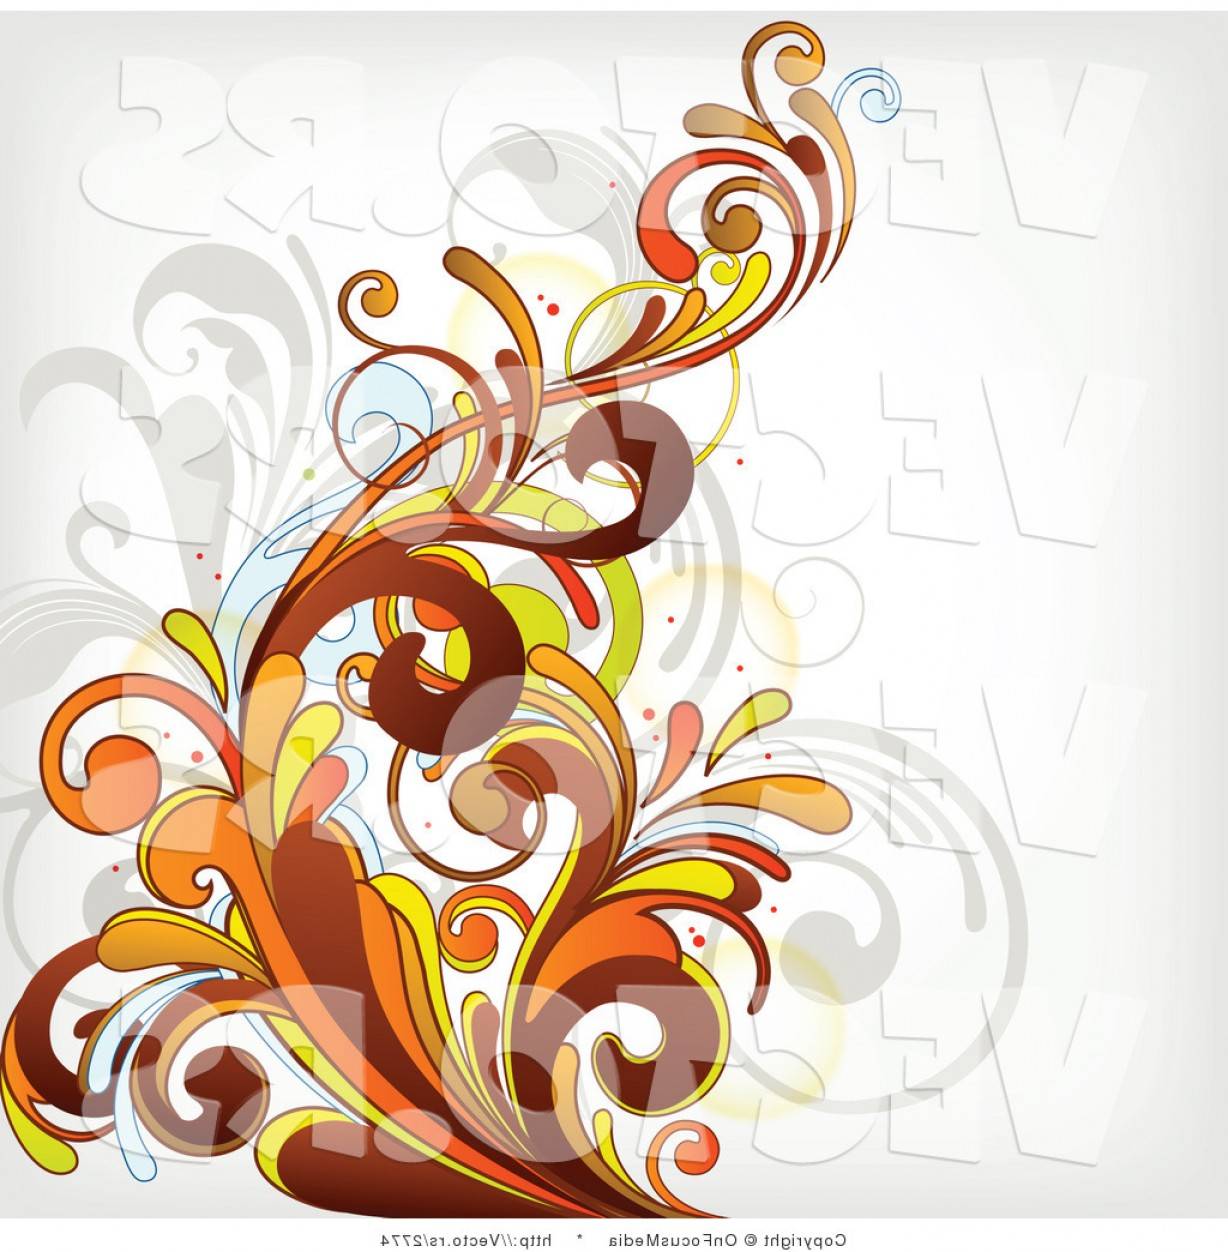 Vector Flourish Backgrounds: Vector Of Orange Flourish Vines Background Design On White Background Version By Onfocusmedia